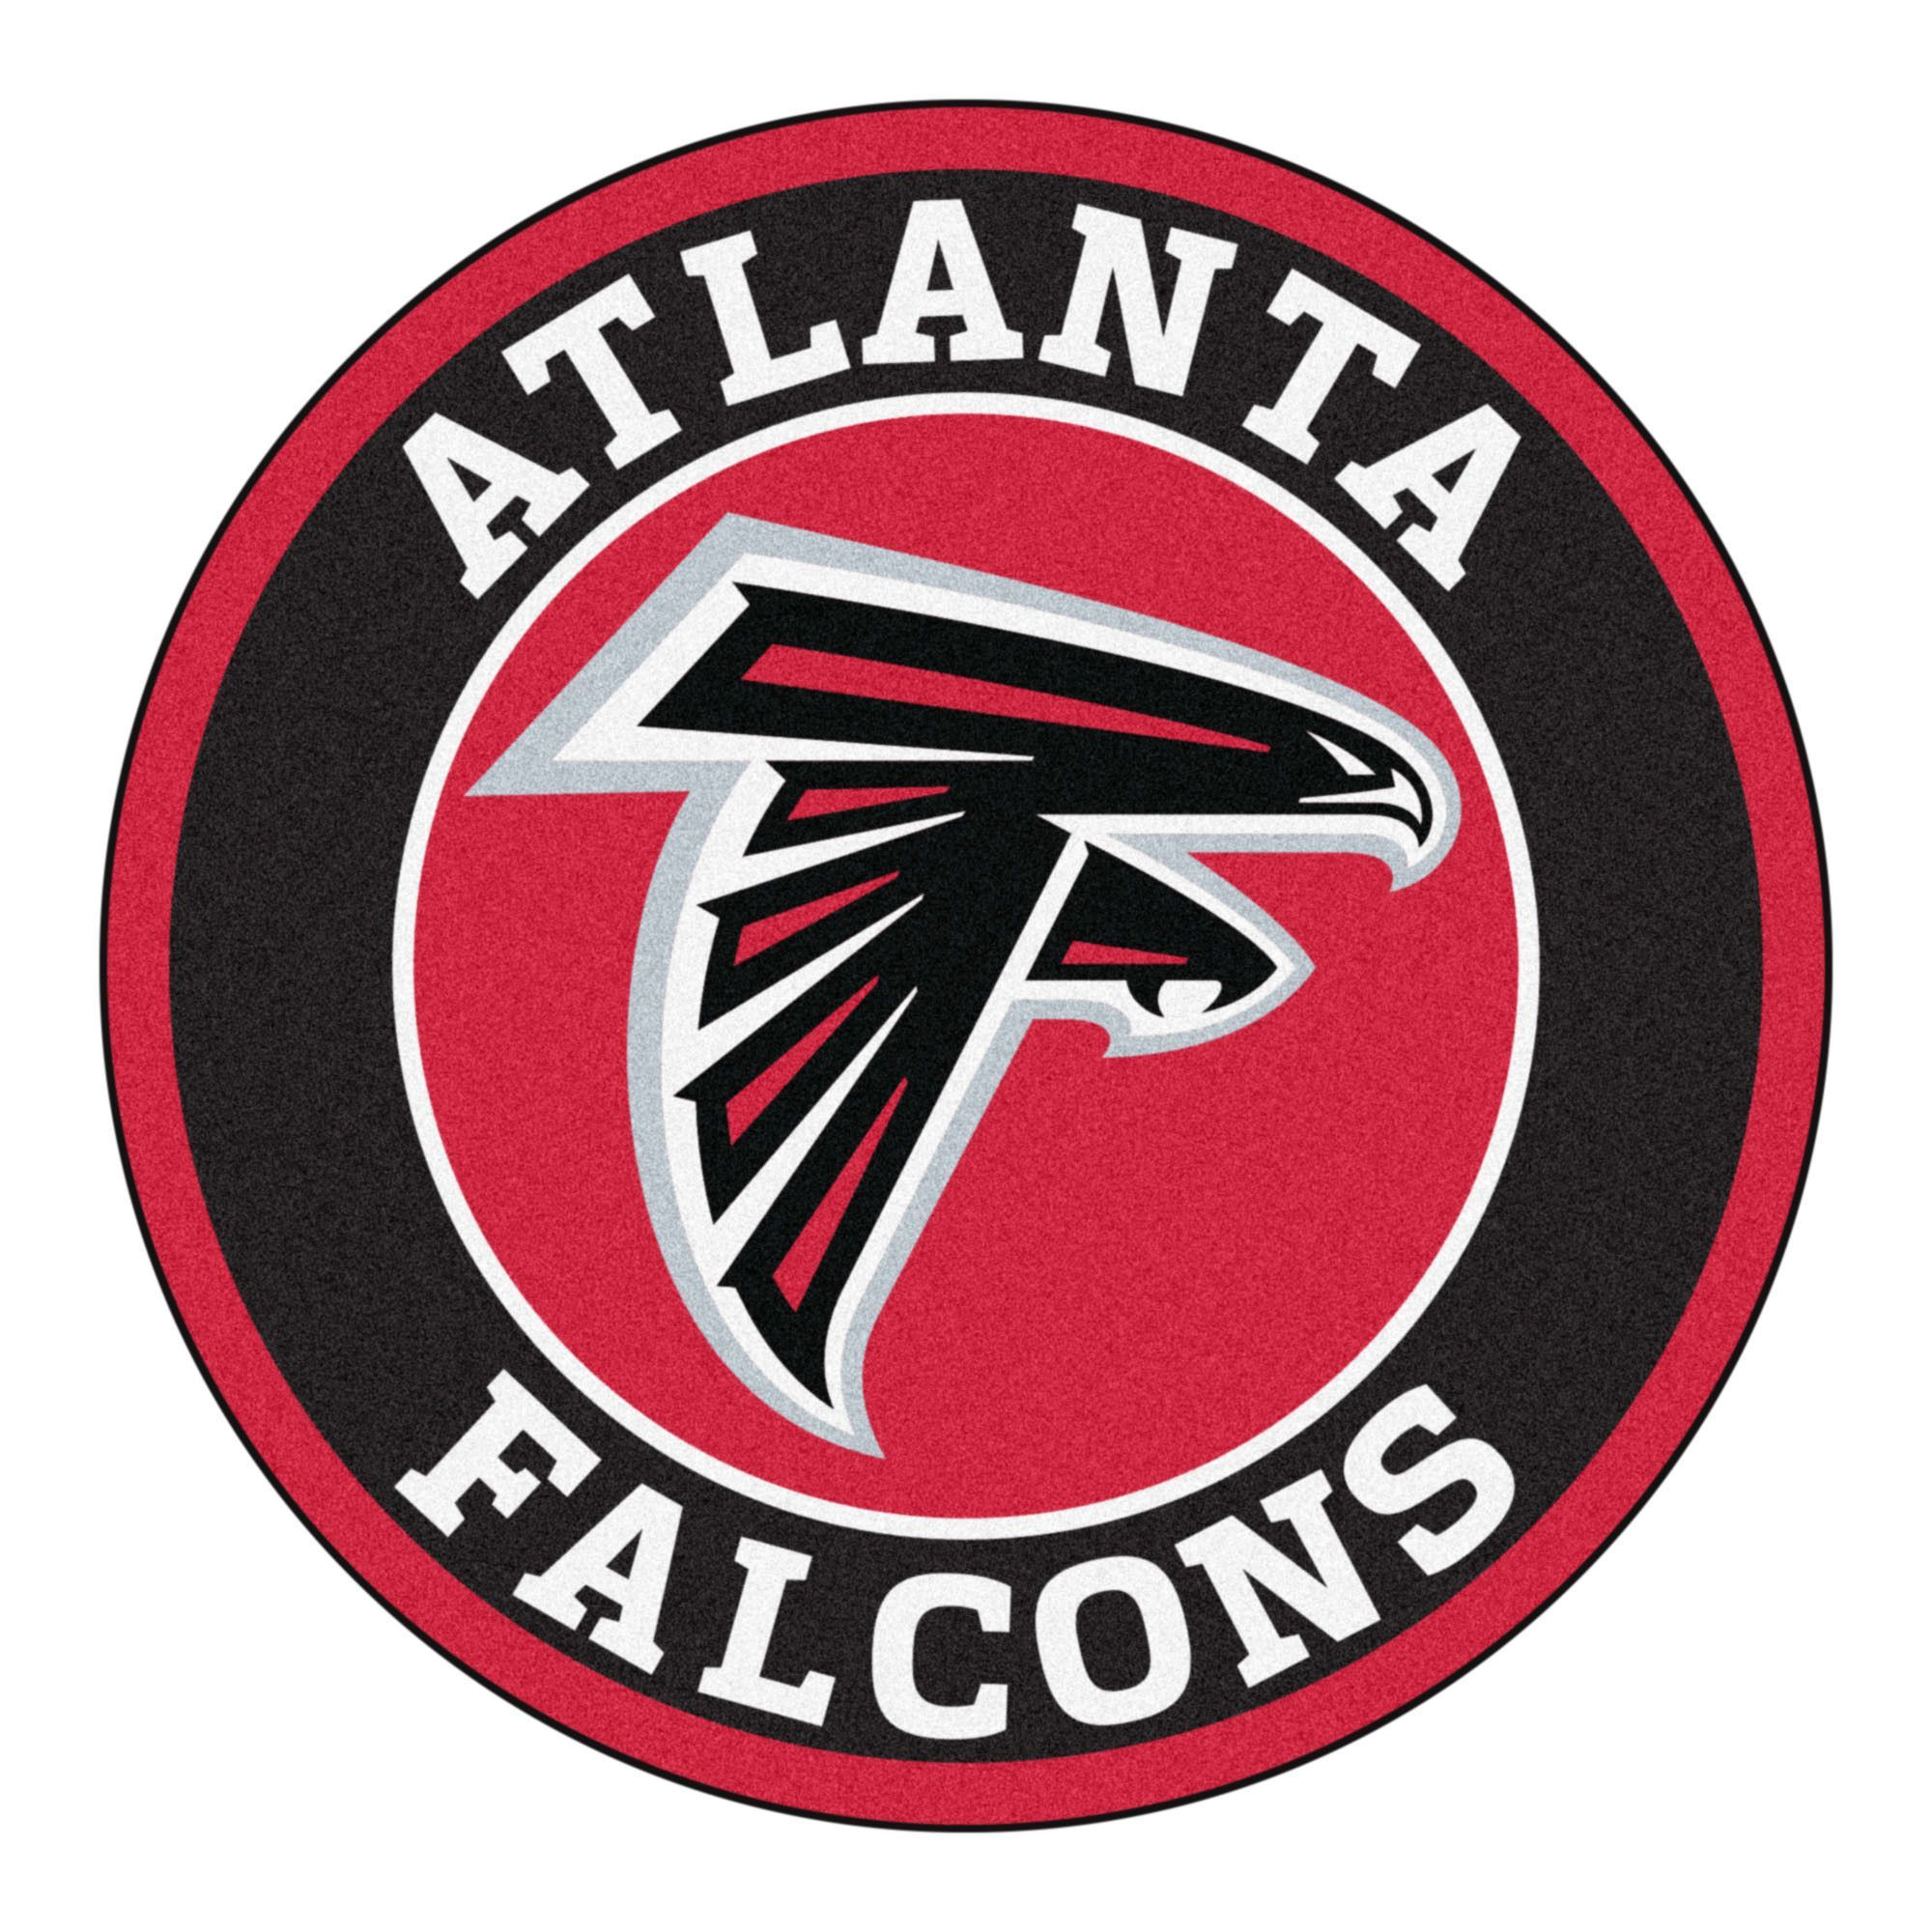 For All Those Nfl Fans Out There These 27 Round Rugs Featuring The Atlanta Falcons Logo And Col Atlanta Falcons Logo Atlanta Falcons Atlanta Falcons Football